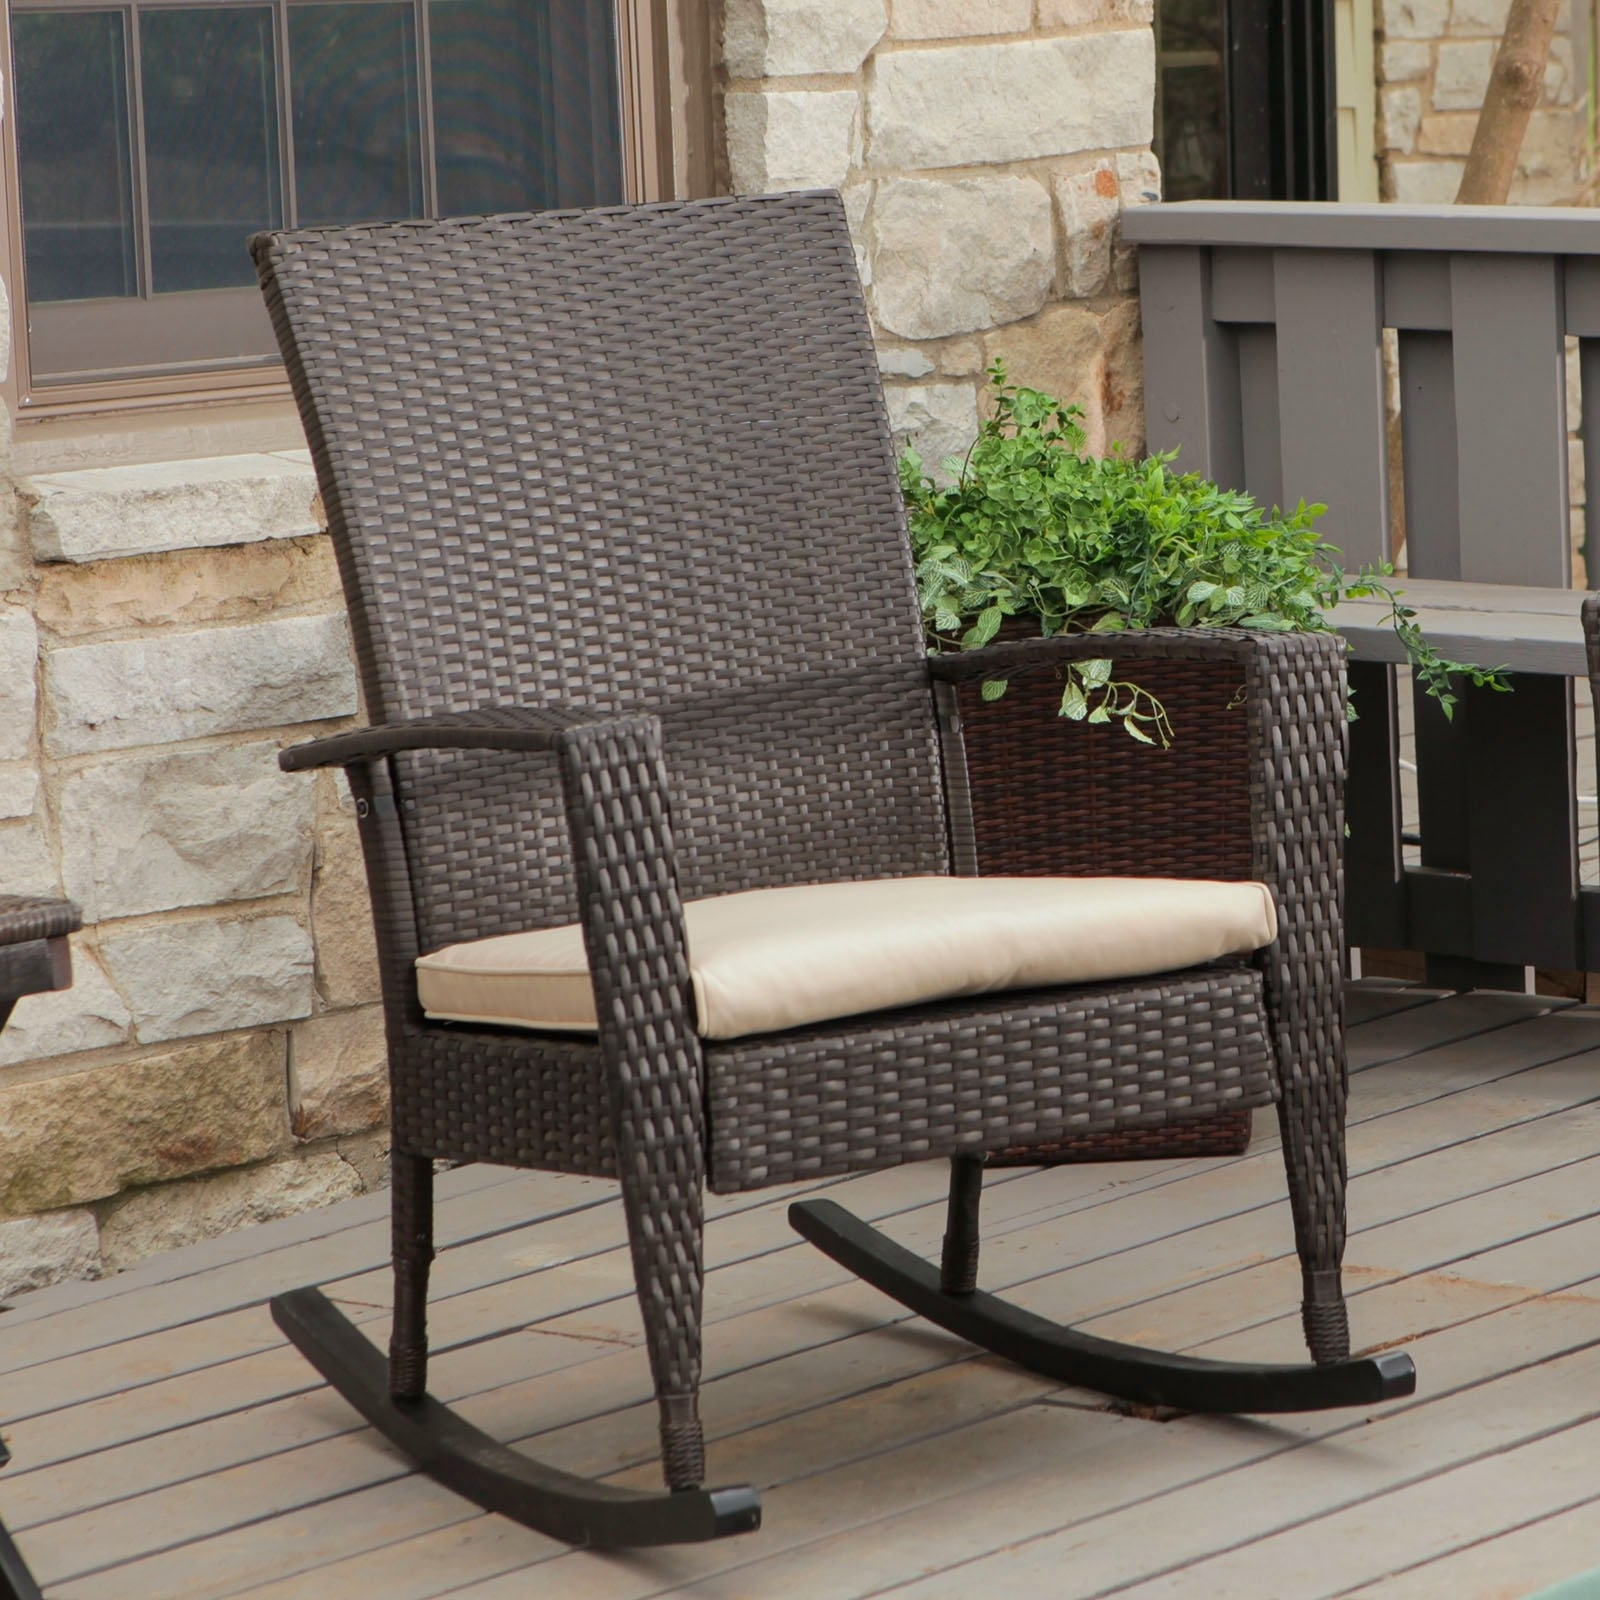 Decorating Modern Lawn Chairs Modern Balcony Furniture Modern Patio Intended For Patio Rocking Chairs Sets (#4 of 15)